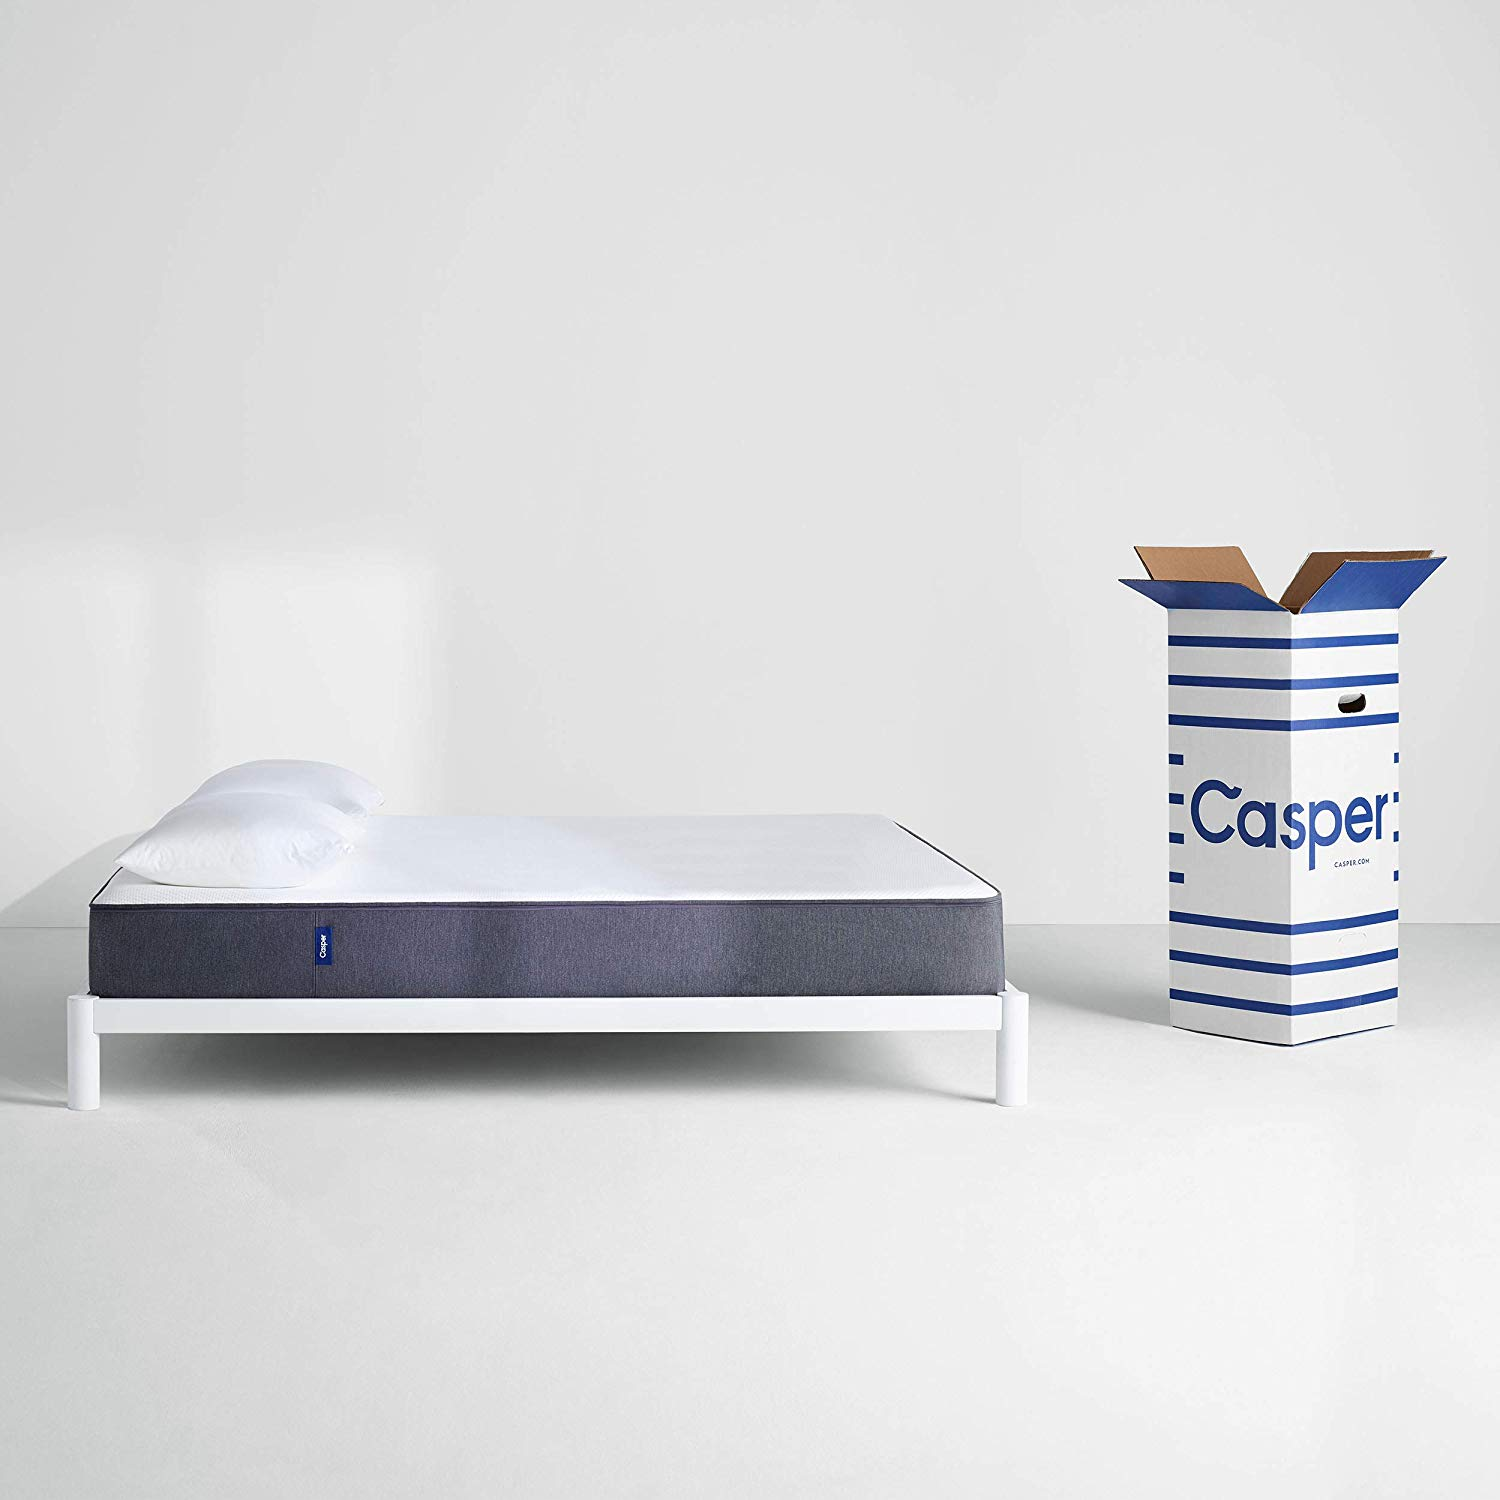 Casper Sleep Luxury Mattress review by www.snoremagazine.com